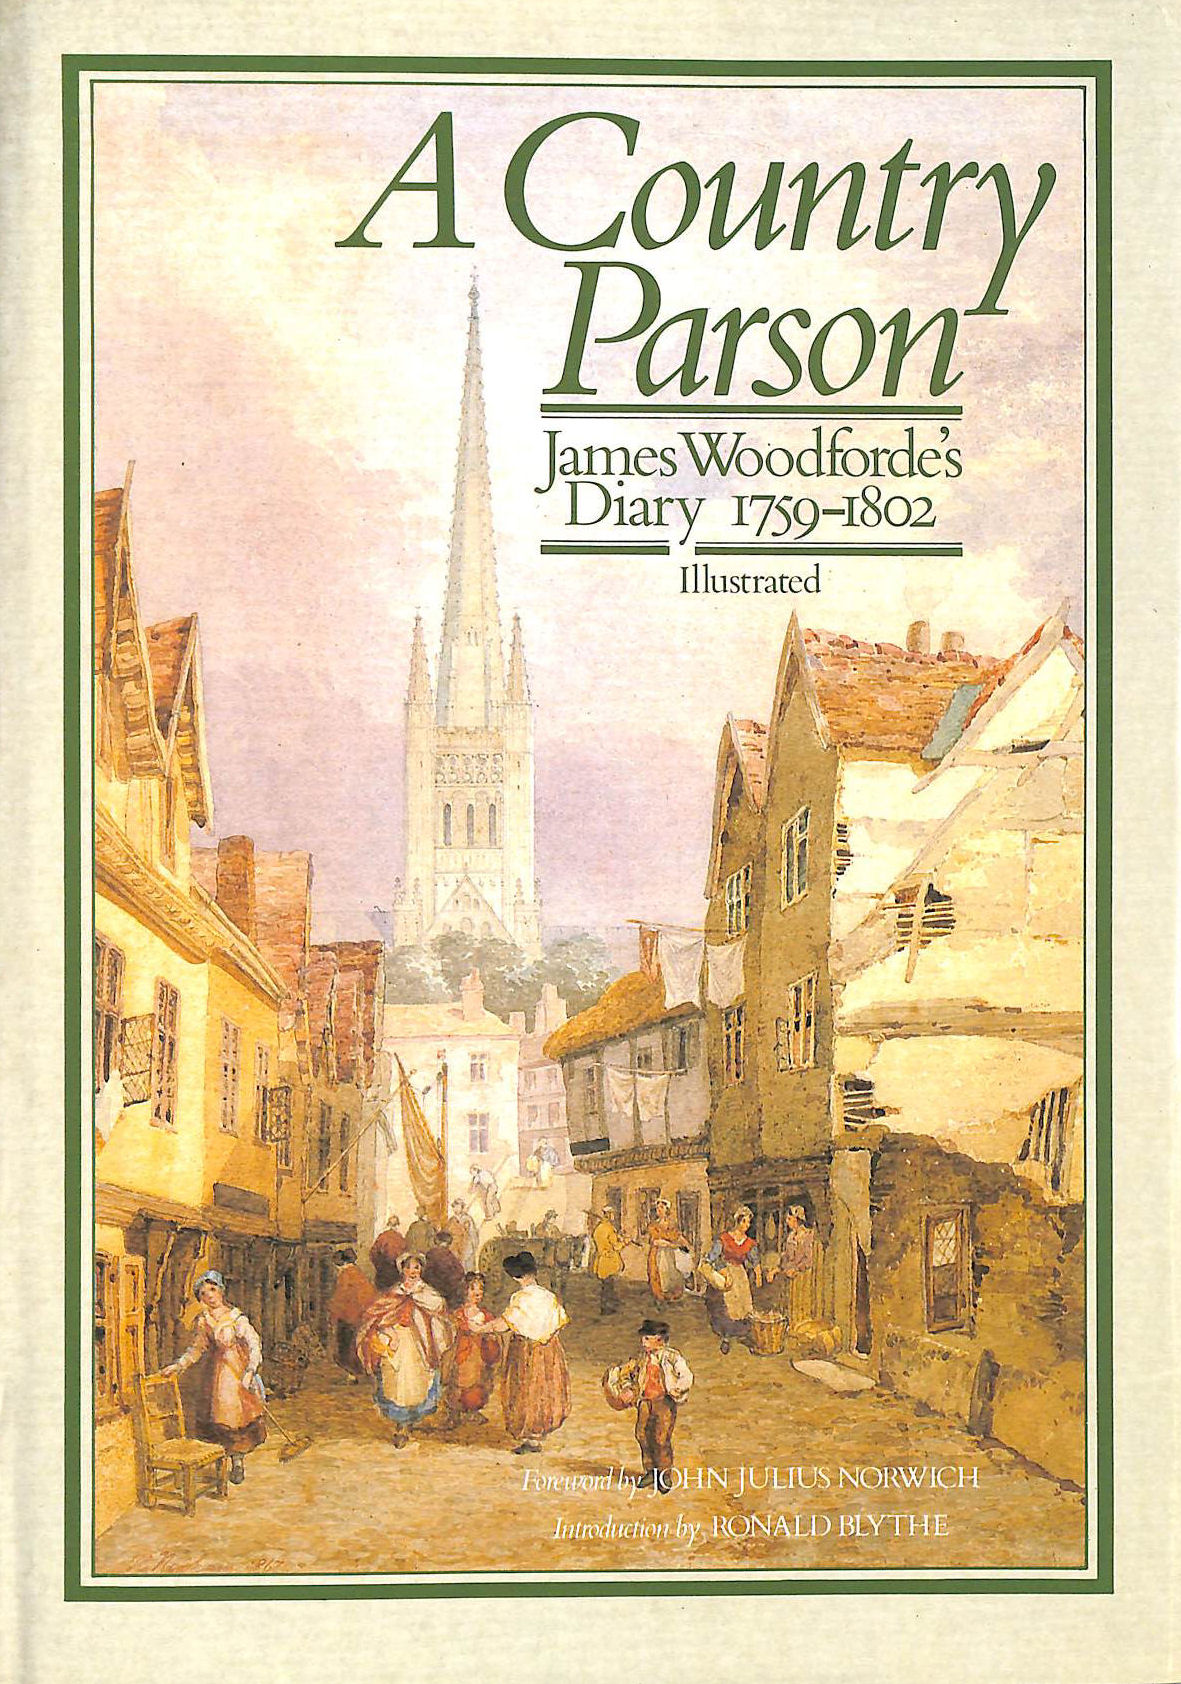 Image for A Country Parson: James Woodforde's Diary, 1759-1802.